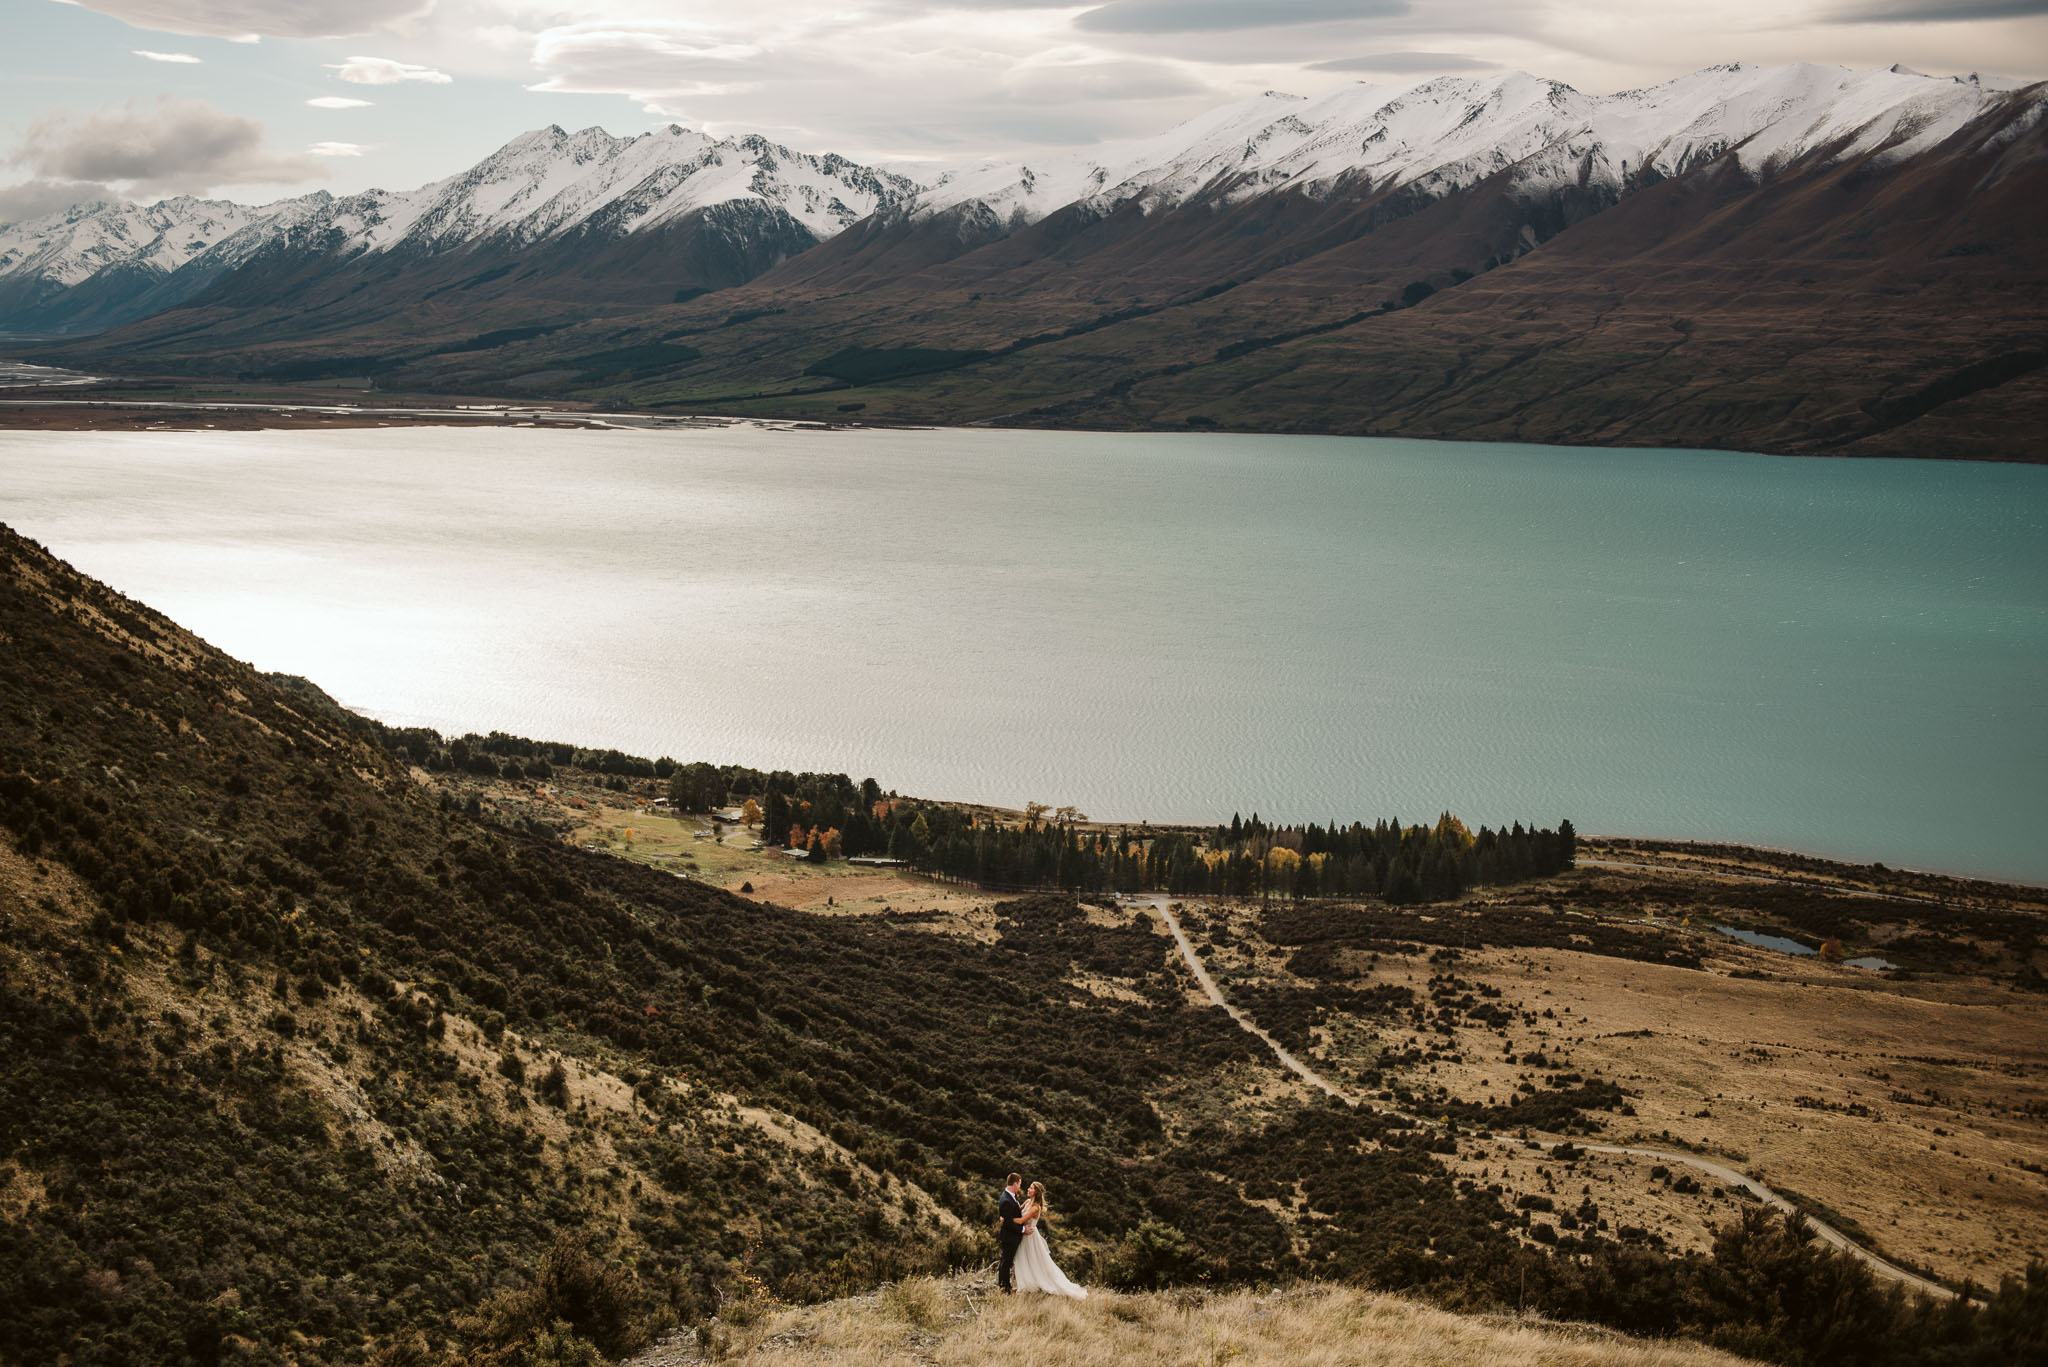 LAKE OHAU  Probably the best kept secret of the South Island. While Lake Ohau is typically a little more off the beaten track than other places, it reveals the real wilderness and beauty of New Zealand.